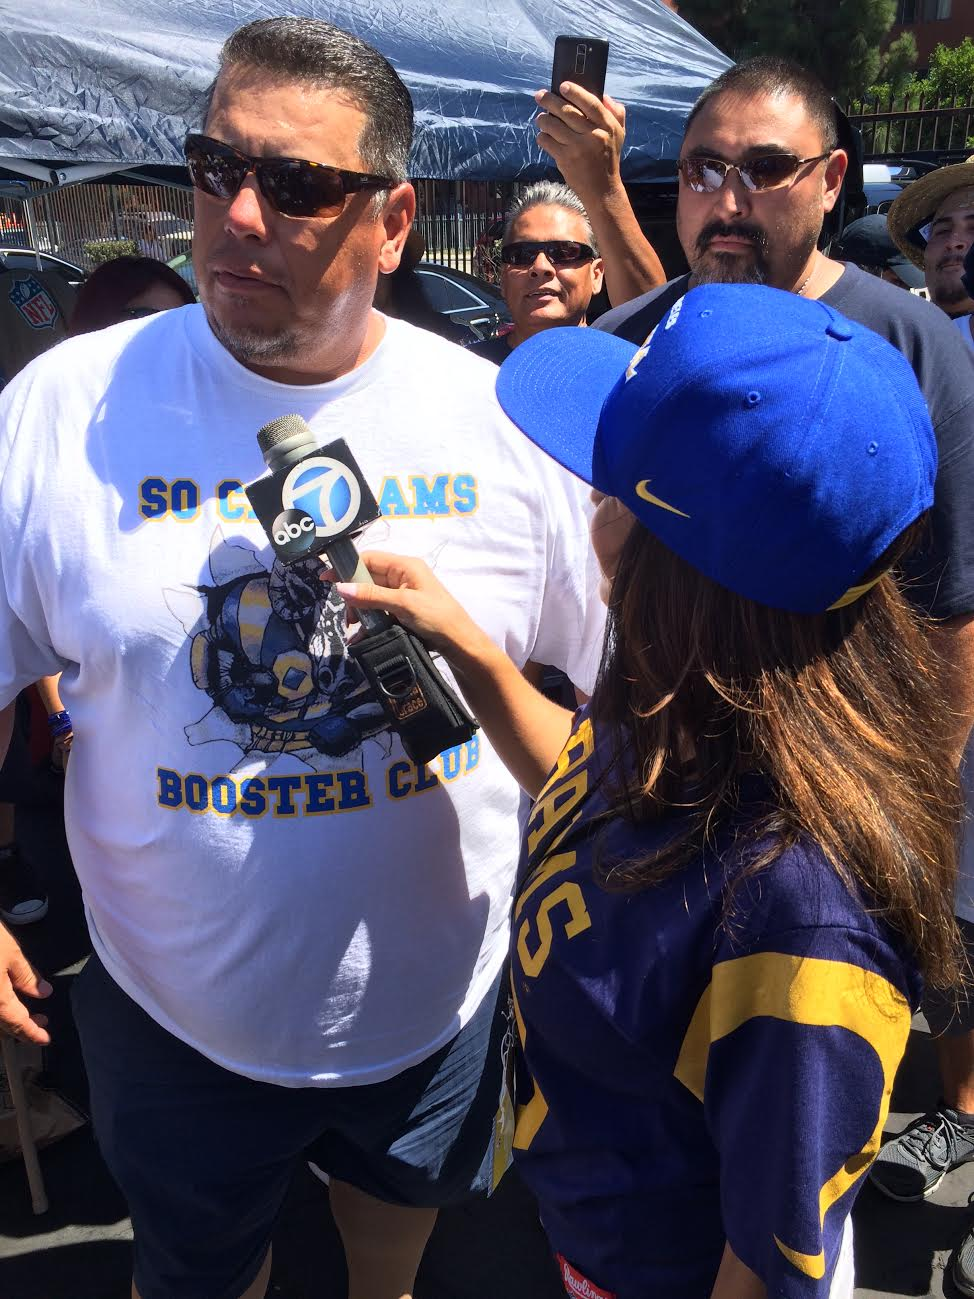 ABC's Ch.7 TV Personality  Alysha Del Valle  interviewing So Cal Rams Booster Club President  Ralph Valdez  at the Rams vs. Cowboys Tailgate (2016)